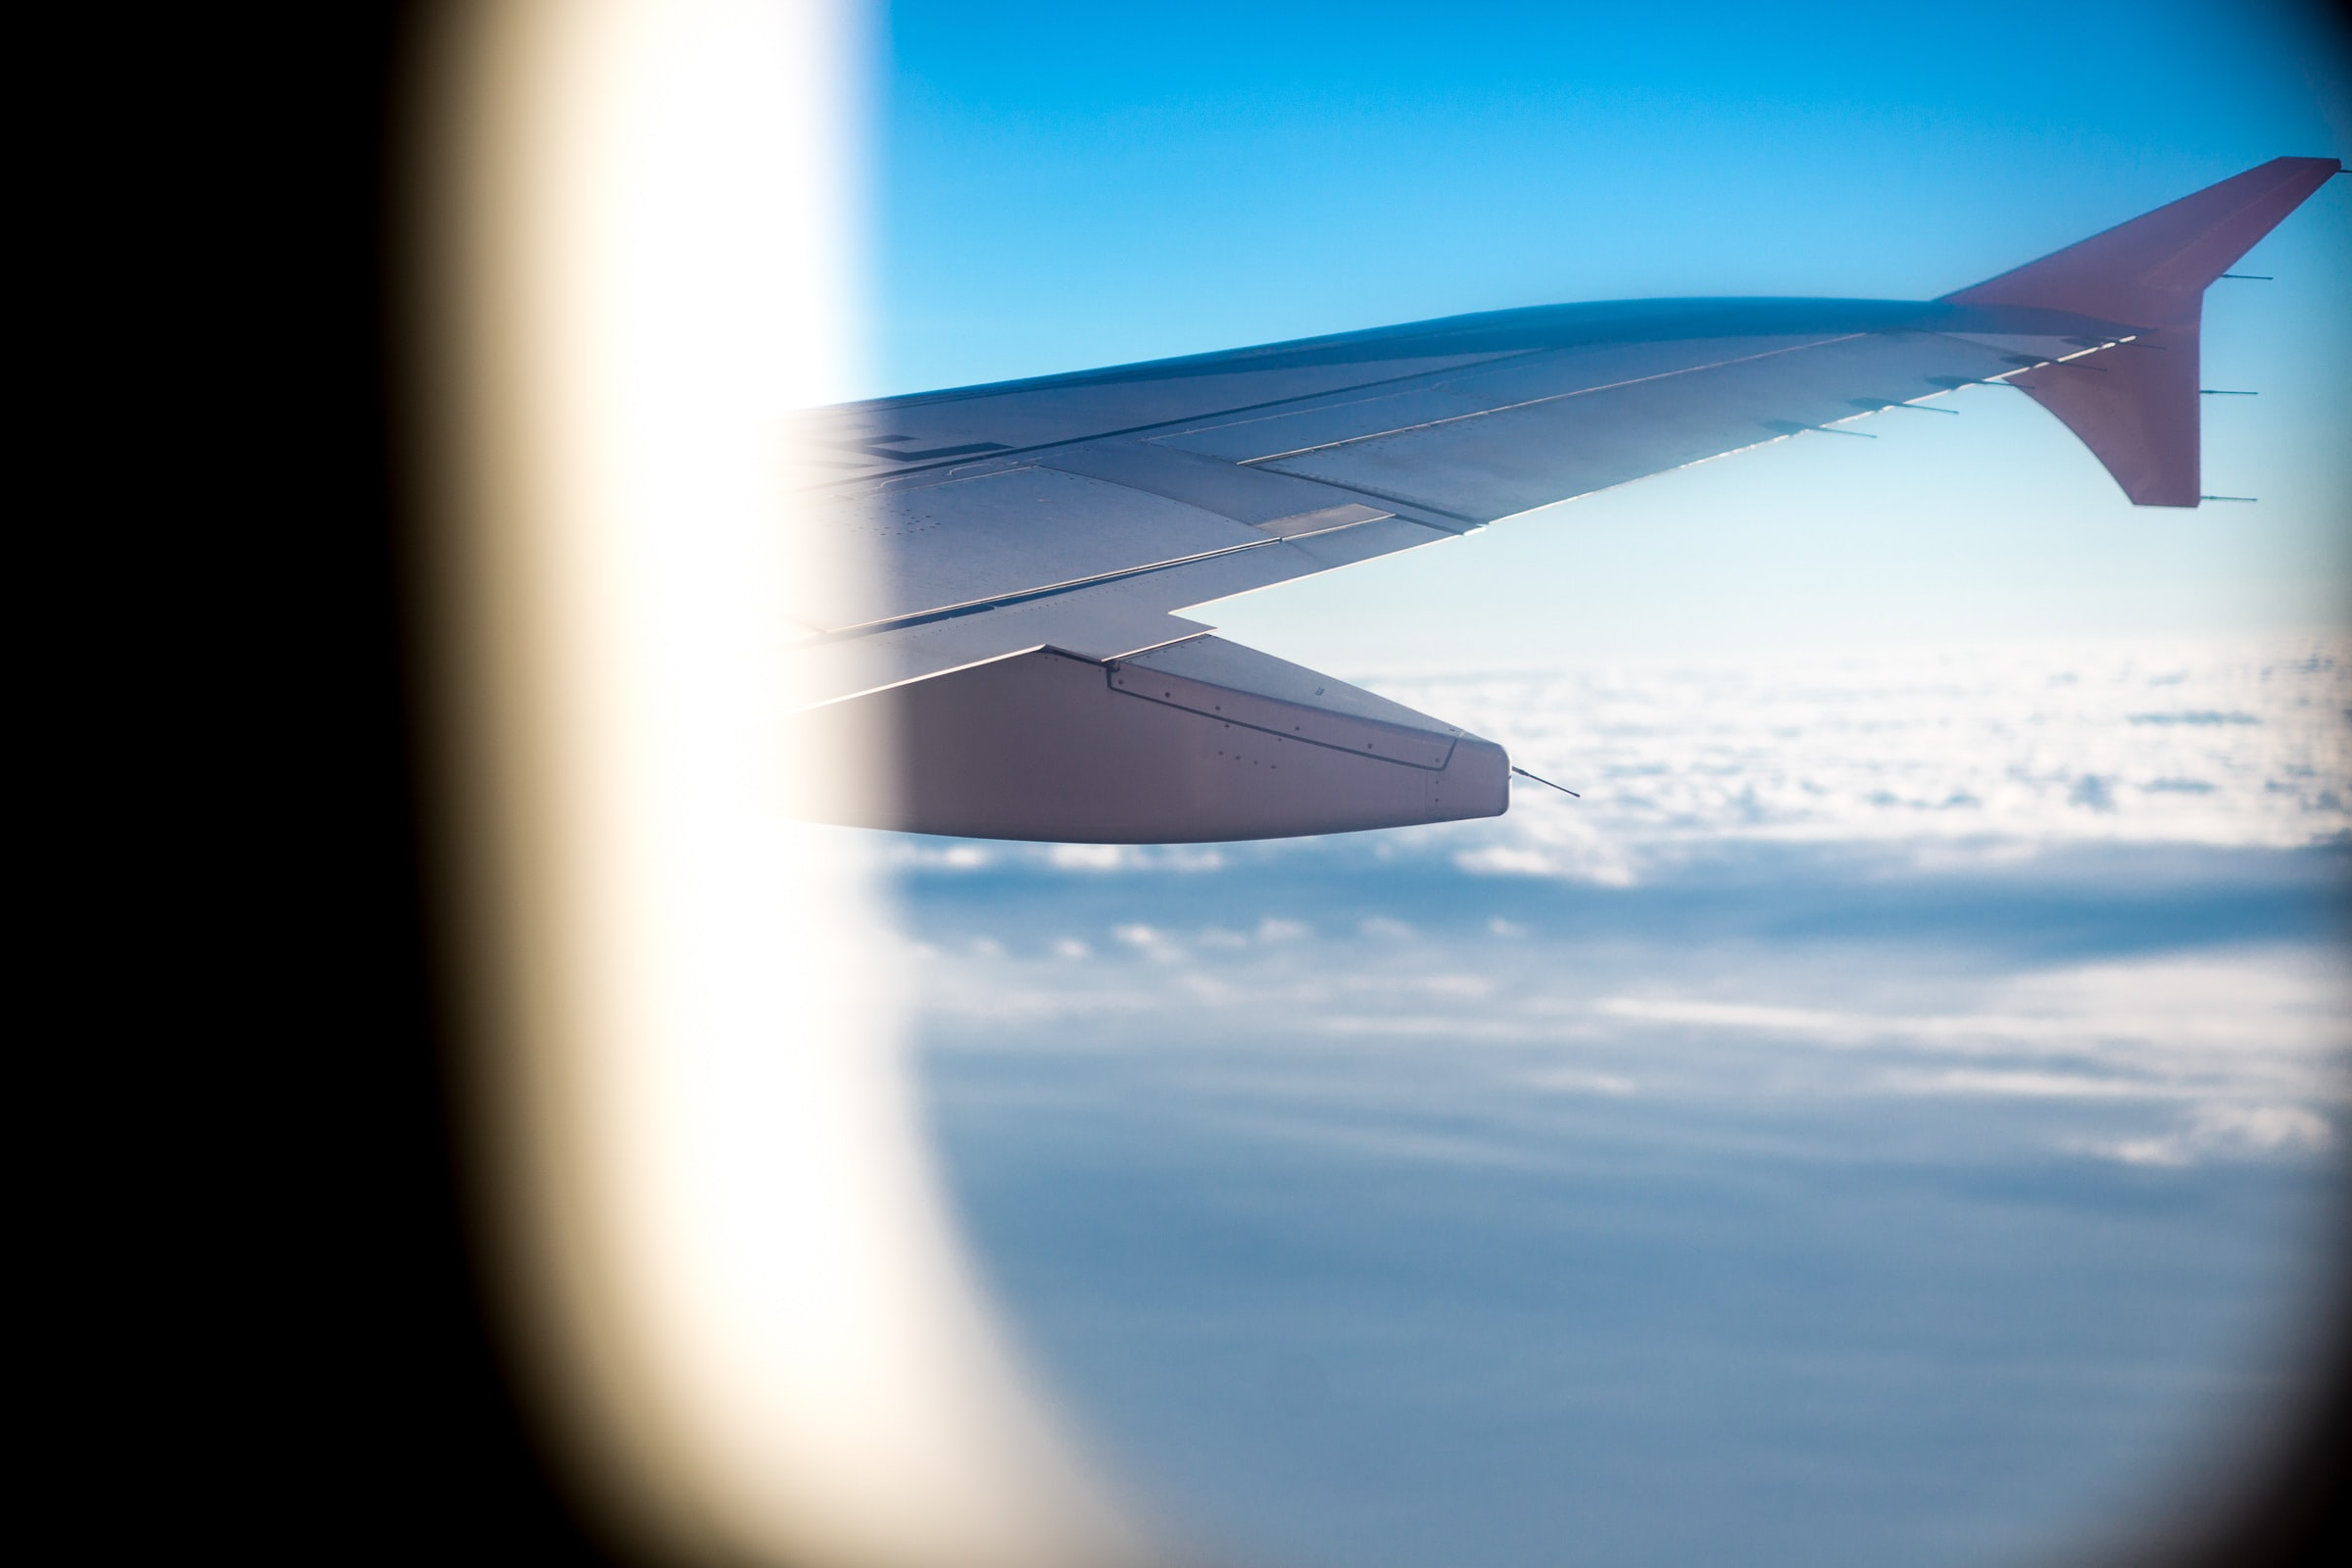 window view of right wing of airplane